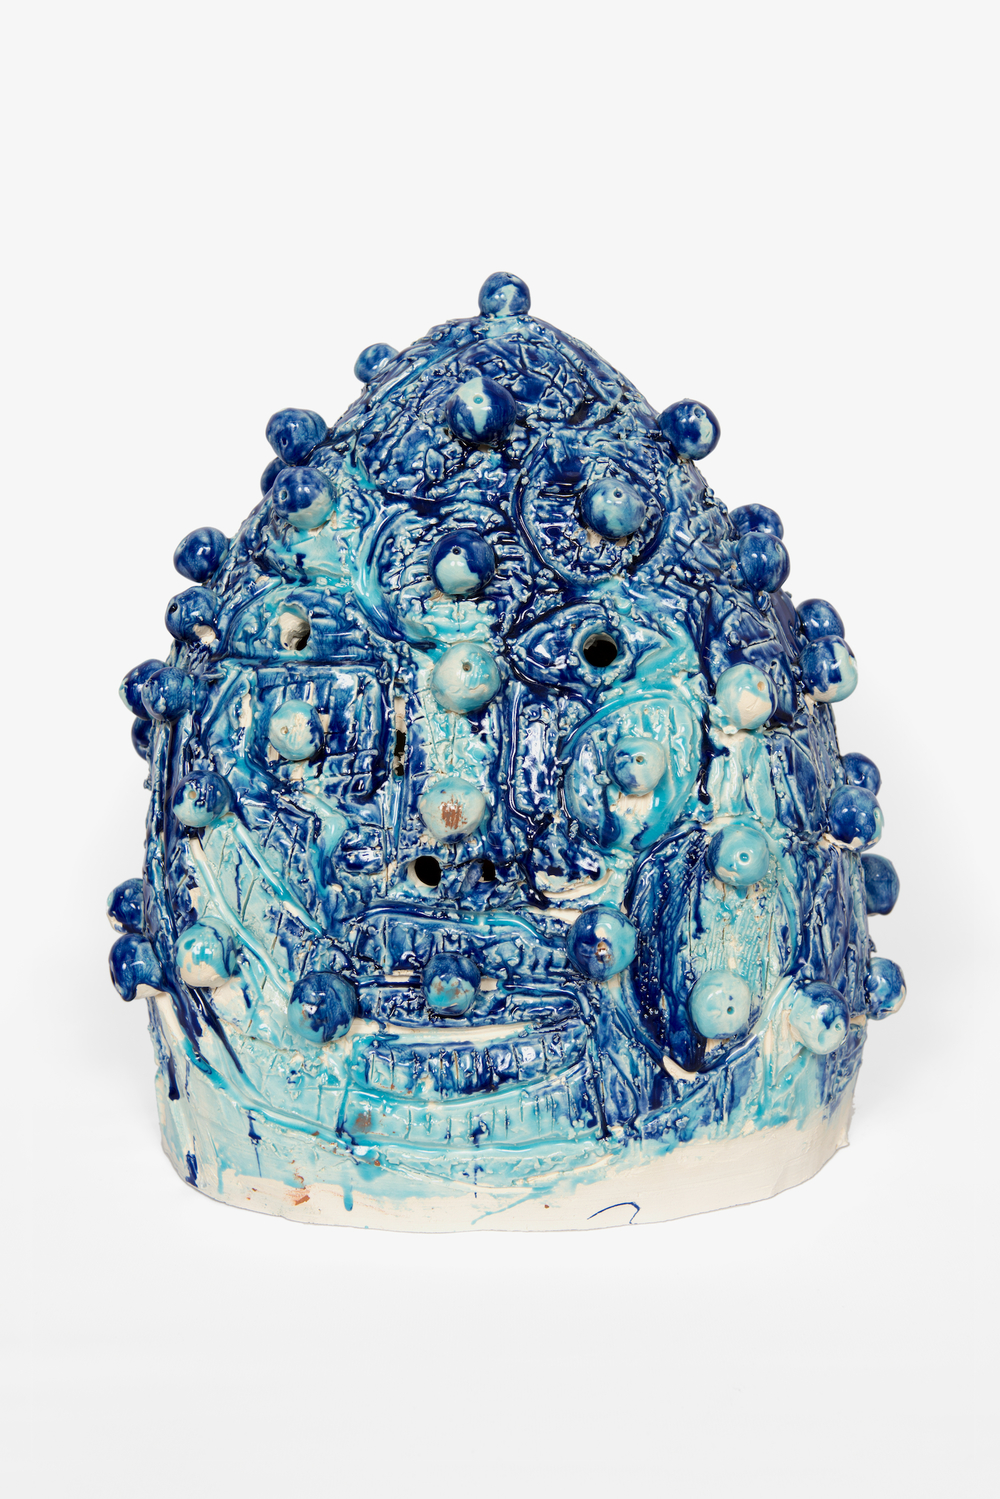 "William J. O'Brien  Blues  2012   Glazed ceramic   18"" x 16 1/2""x 12""  WOB805"